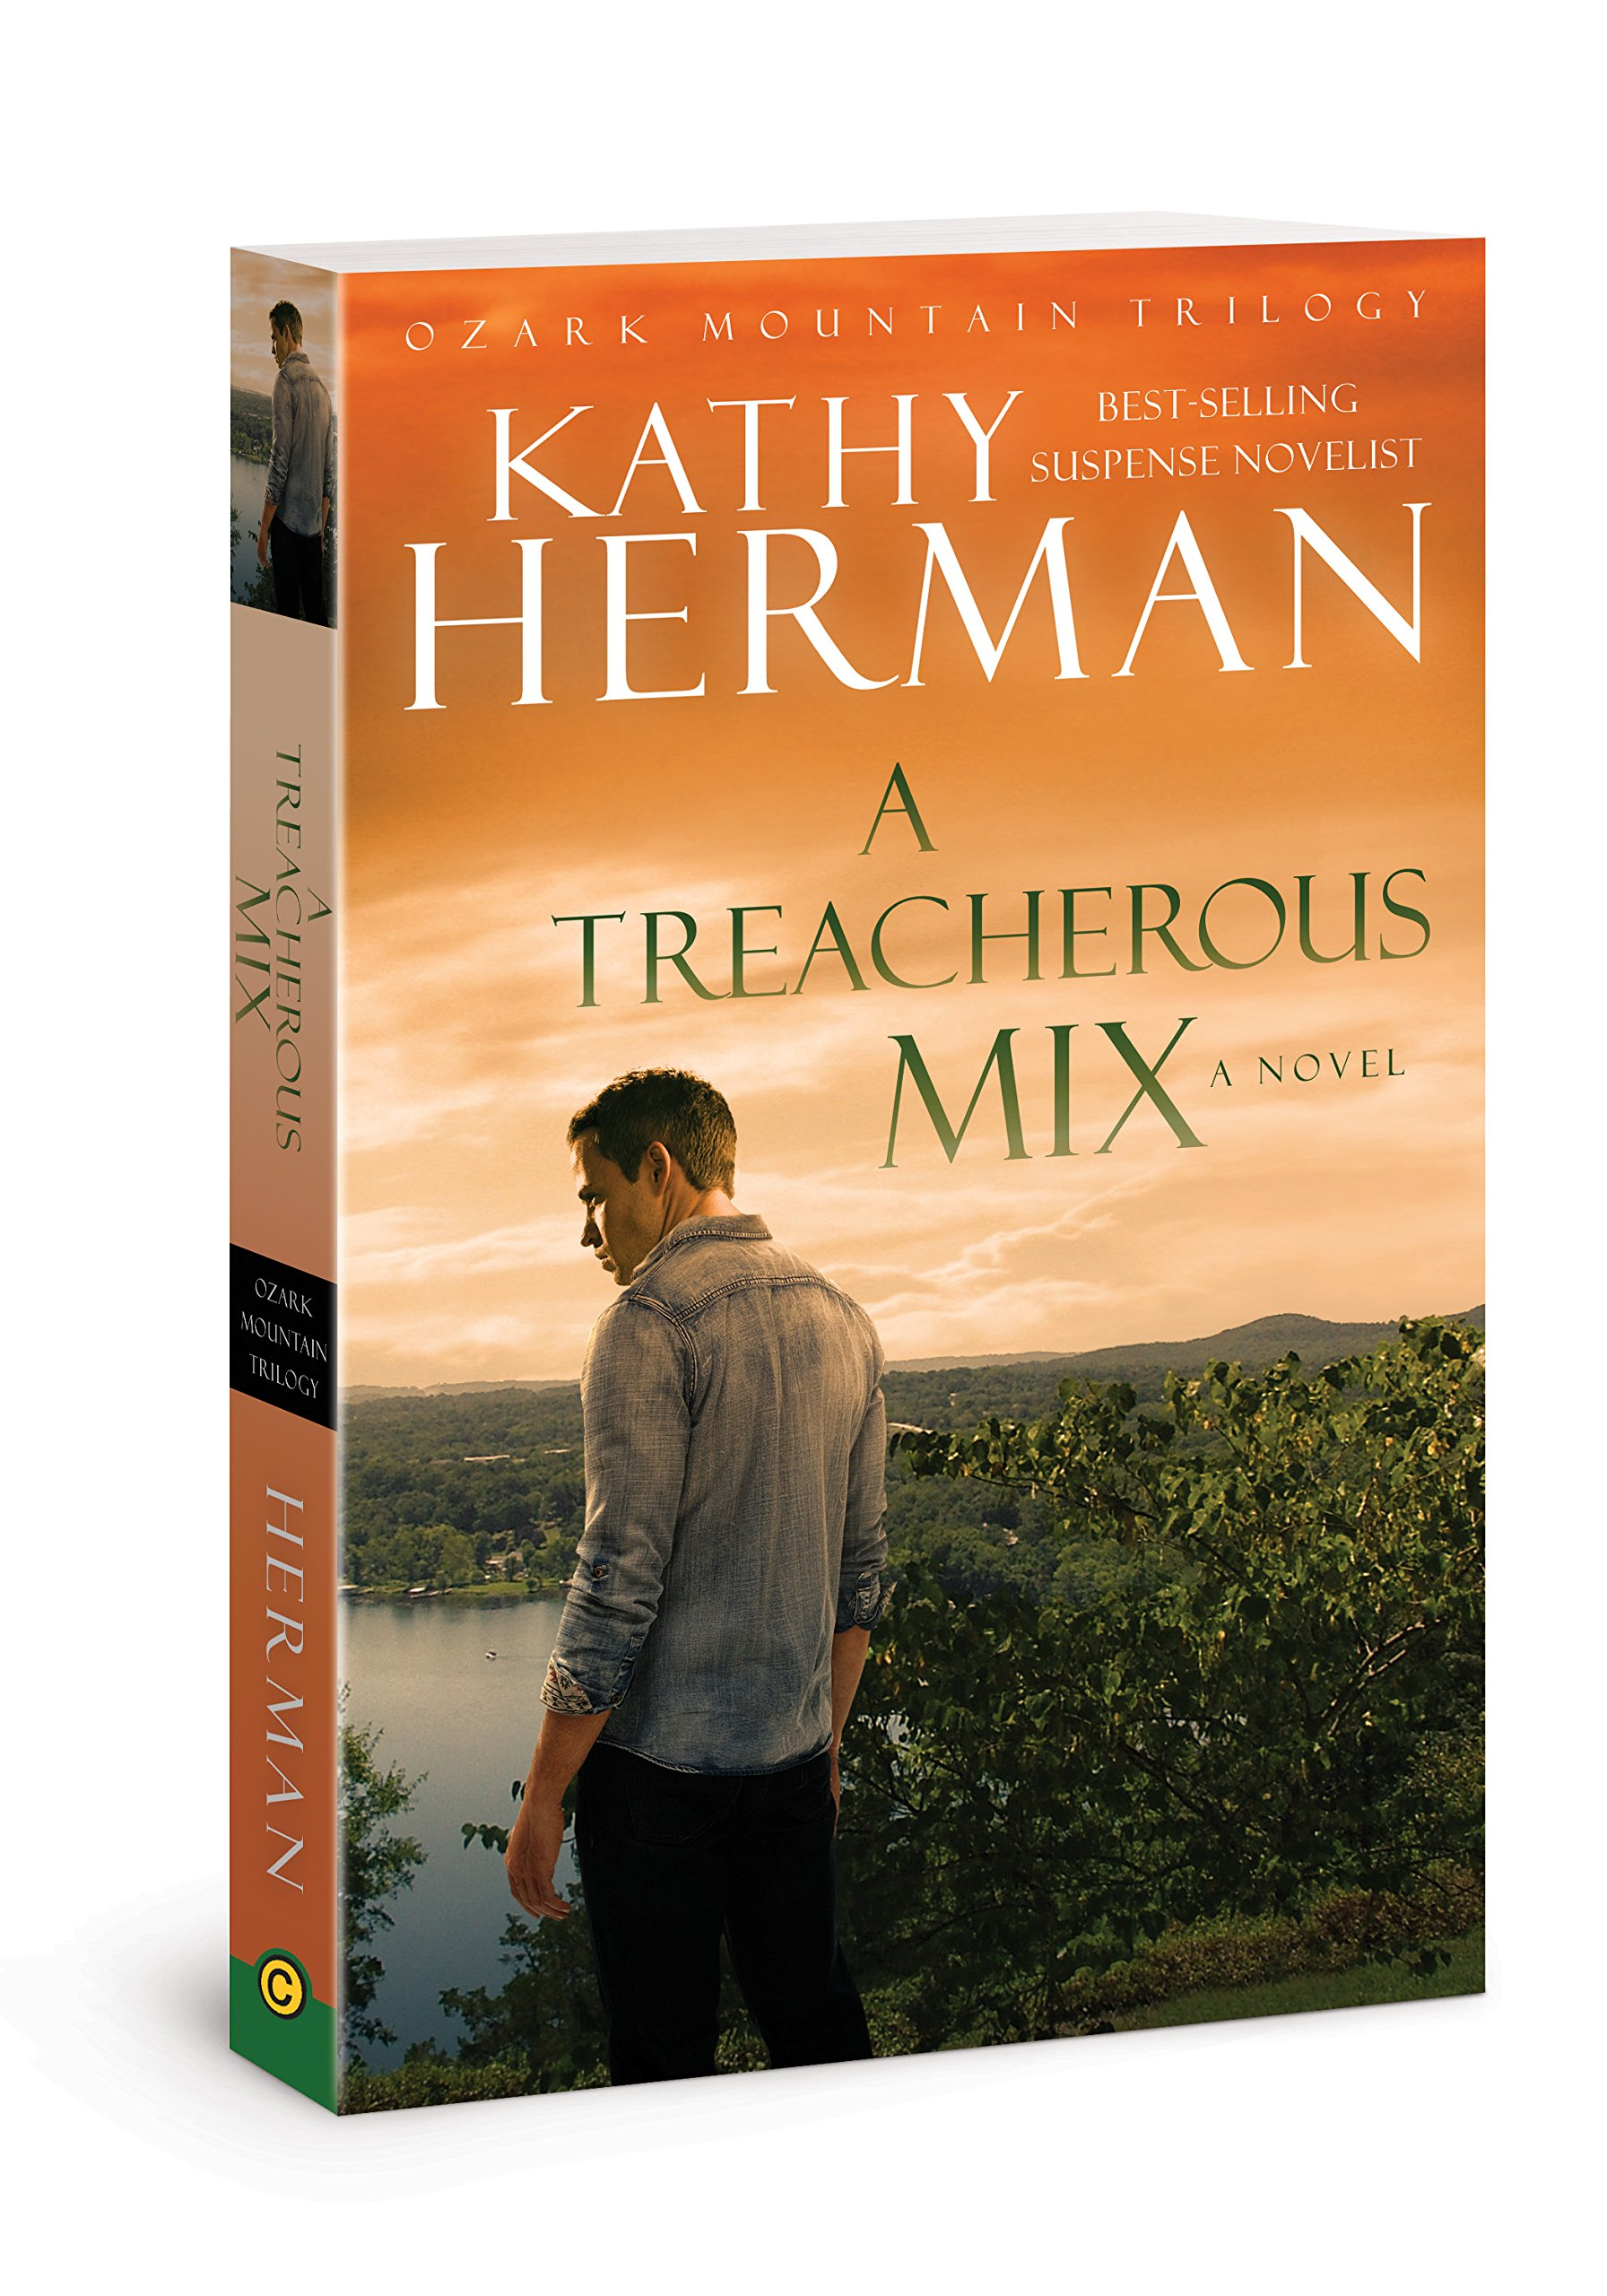 A Treacherous Mix: A Novel (Ozark Mountain Trilogy): Kathy Herman:  9780781408059: Amazon.com: Books